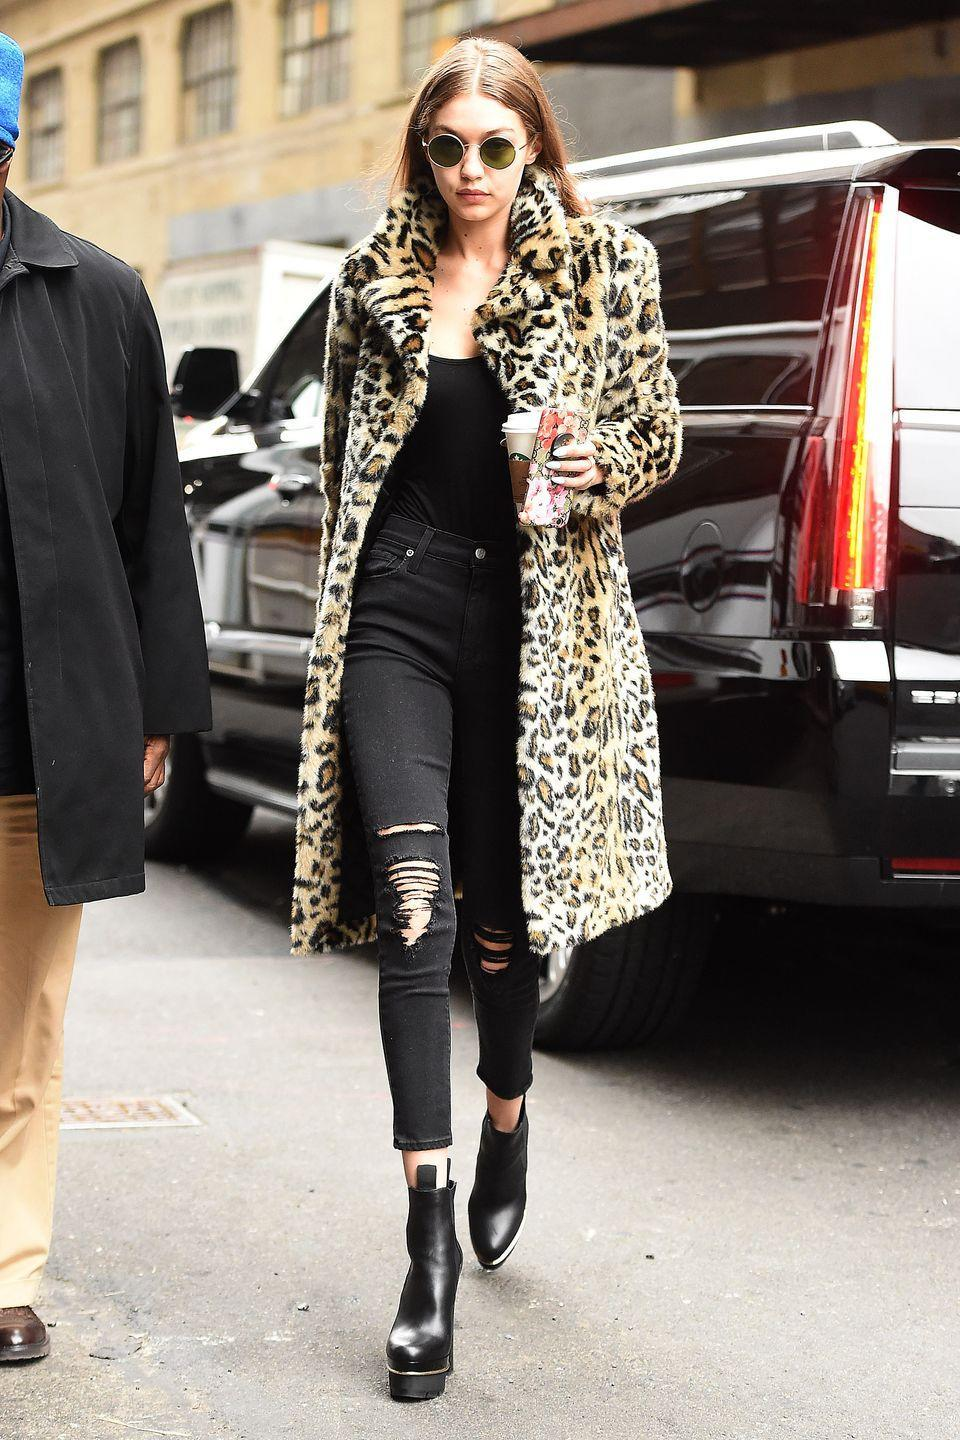 <p>In a leopard coat, black top, Ksubi black distressed jeans, Versace platform ankle boots and rounded sunglasses while out in New York.</p>